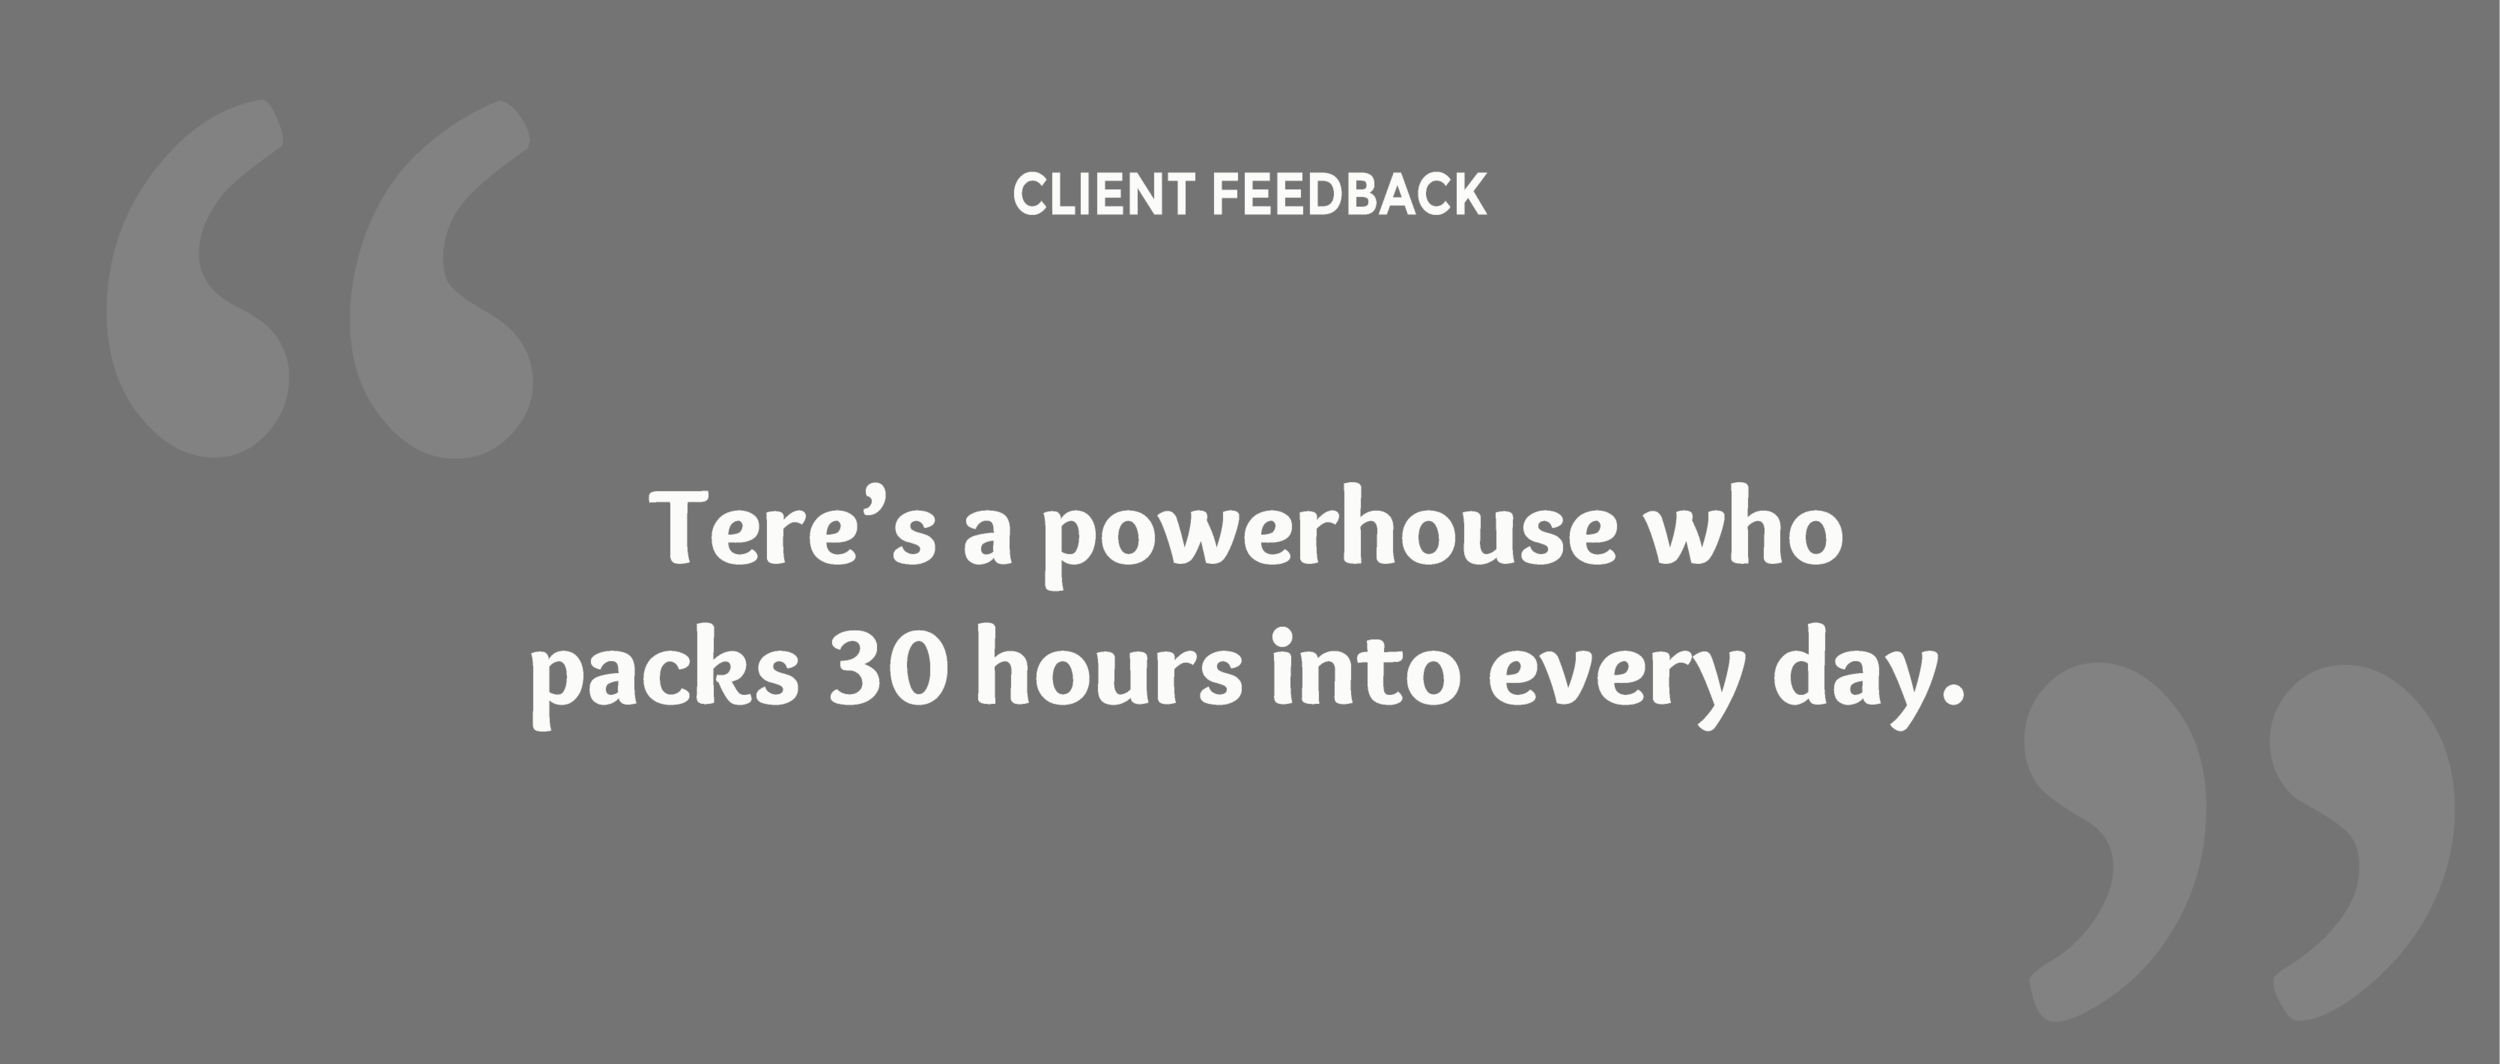 about-client-feedback3.png